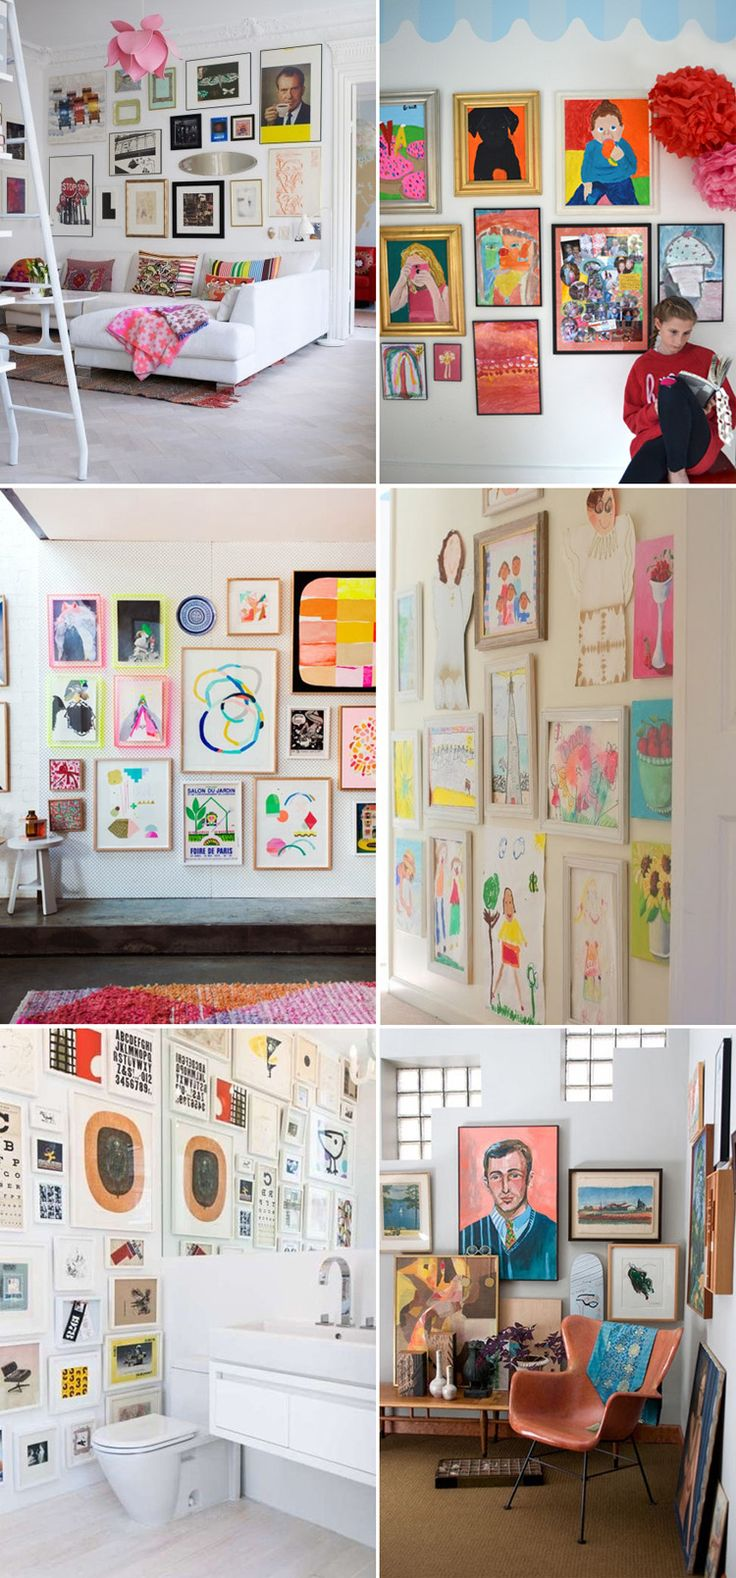 24 gallery walls to display children's art | @artbarblog